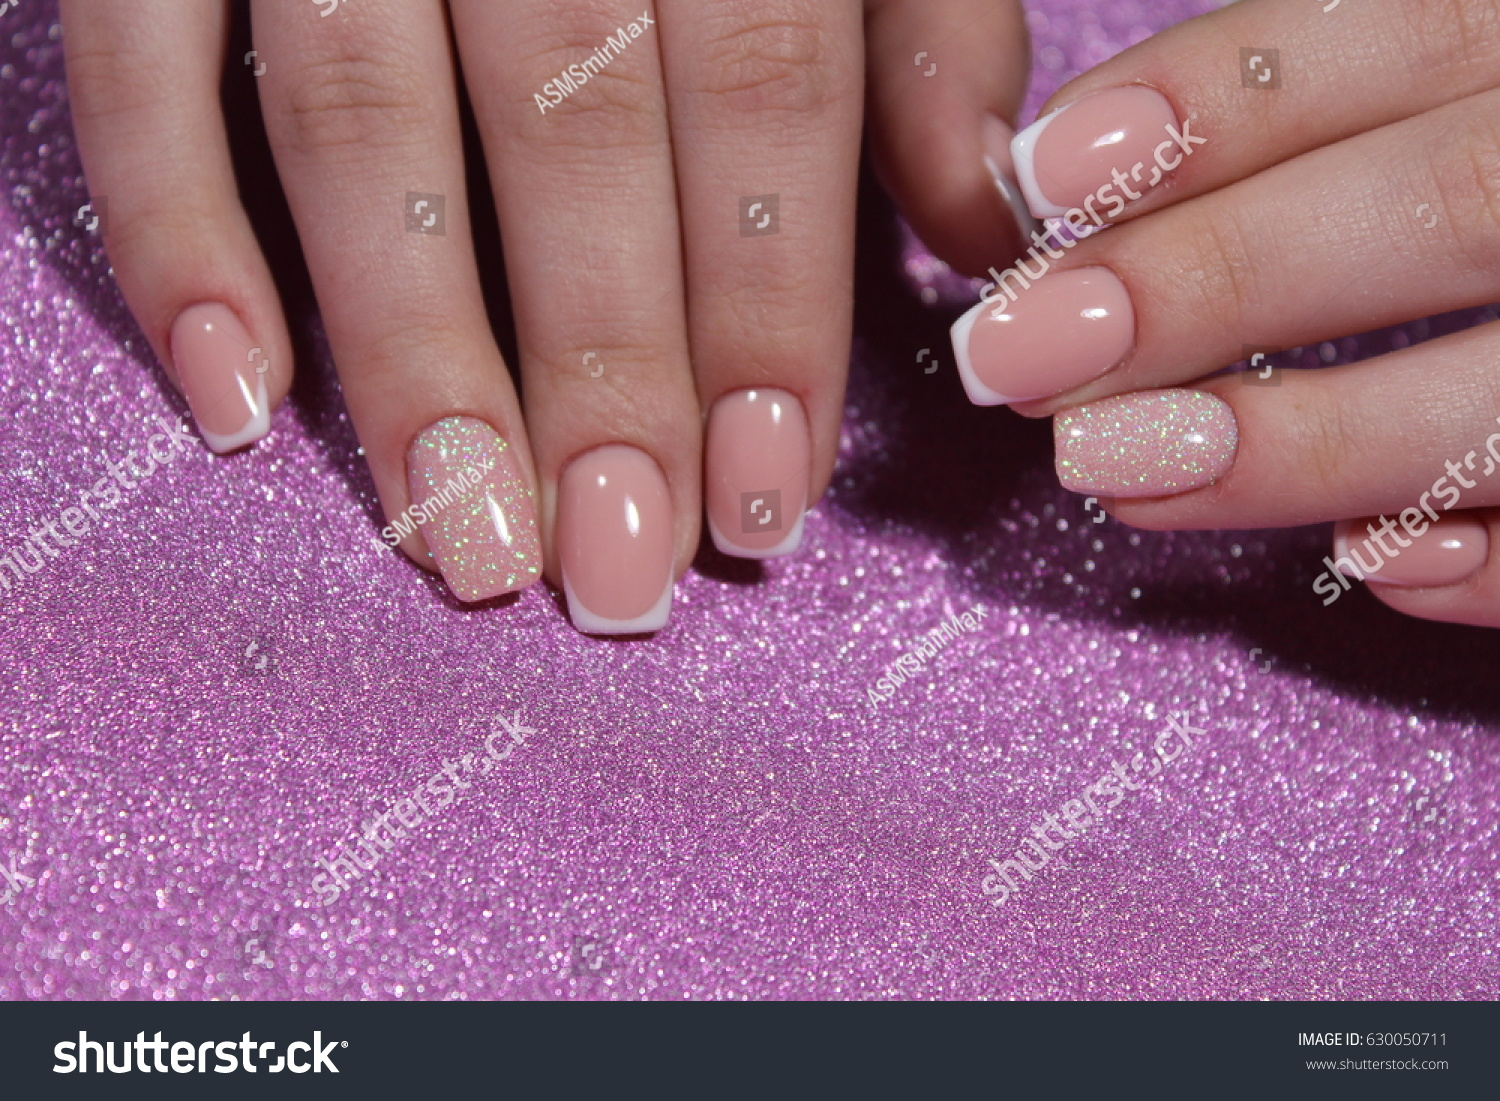 French Manicure Wedding Design Stock Photo (Edit Now)- Shutterstock